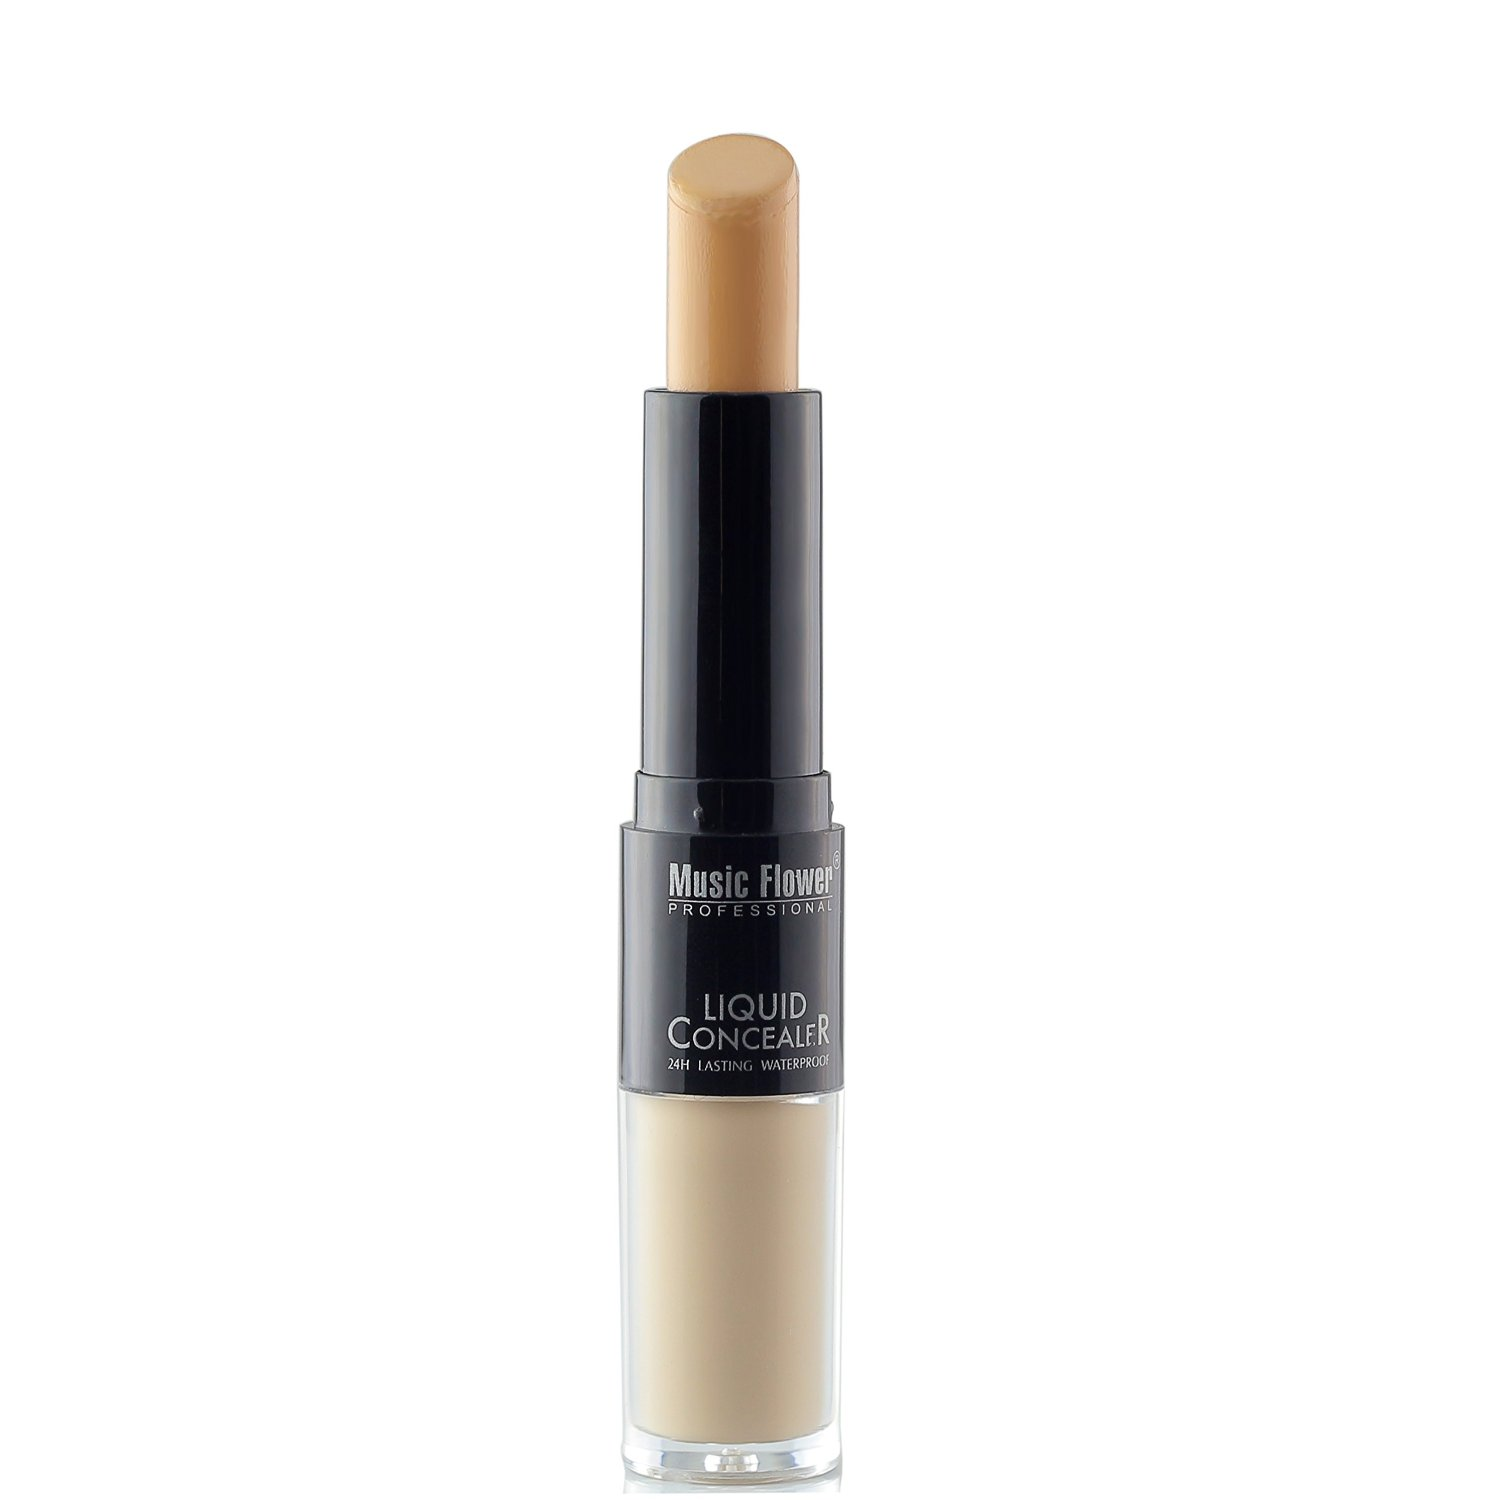 Ucanbe Double Feature Concealer Highlighter - Full Cover Creamy Concealer Stick and Liquid Foundation Concealer with Ball Applicator (skin)